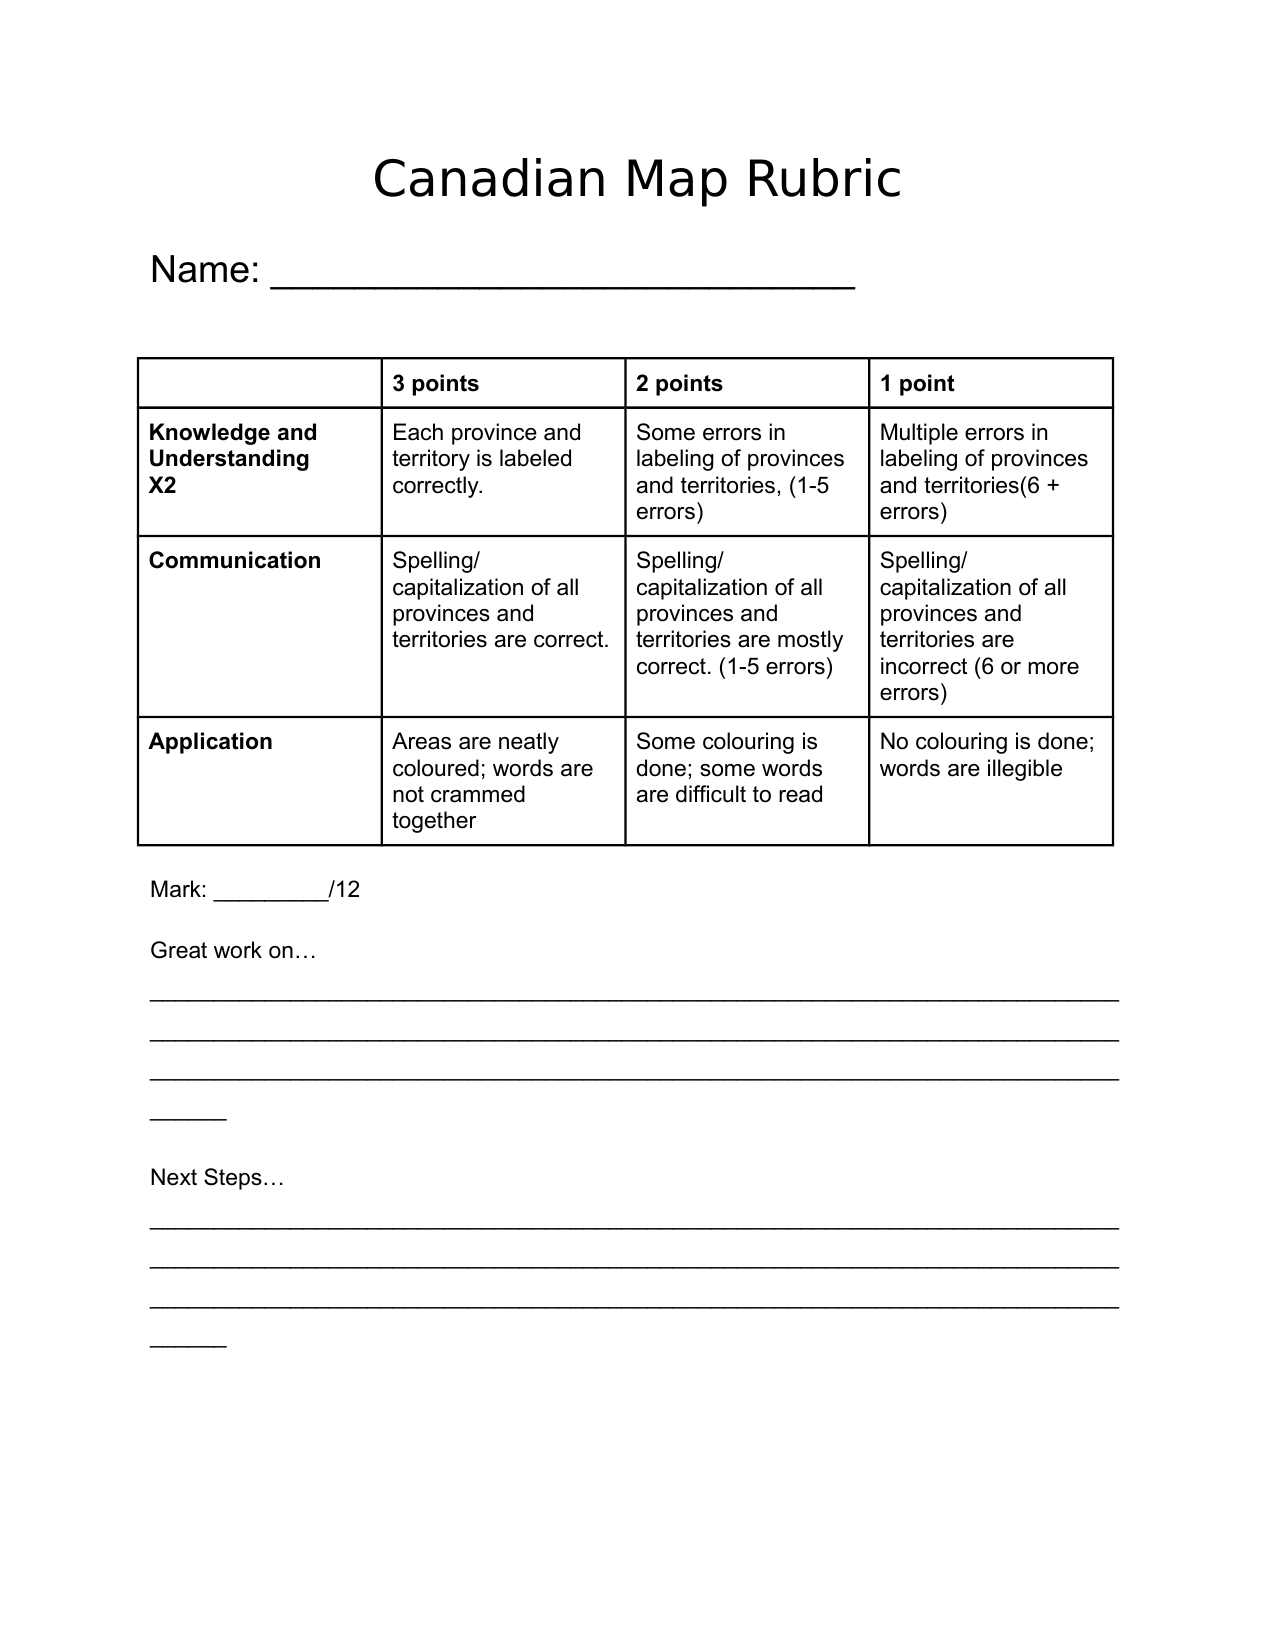 Canadian Map Rubric Resource Preview